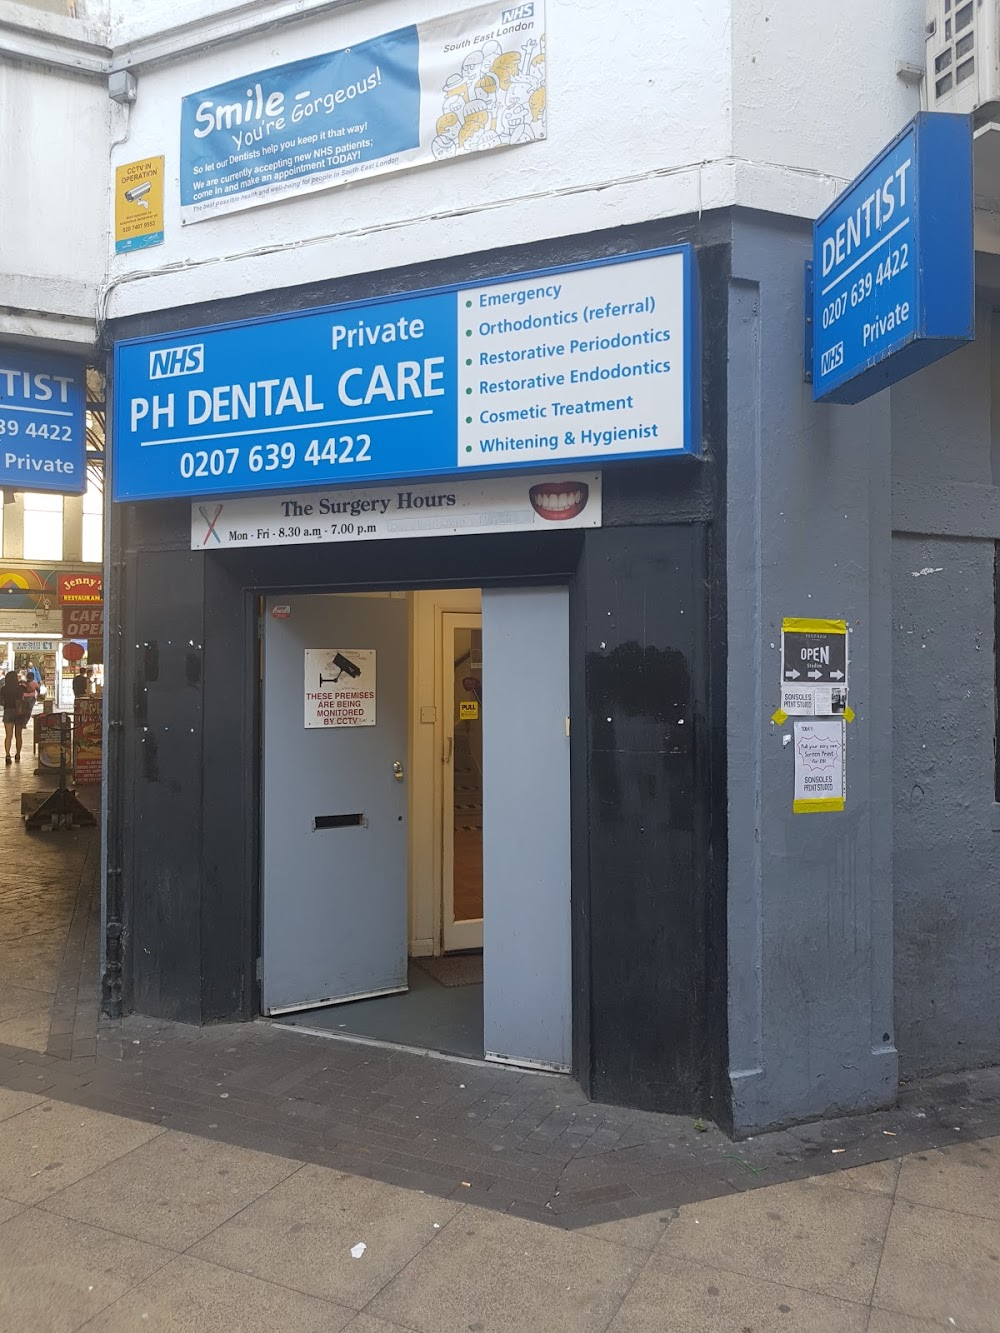 PH Dental Care – Dentistry For You (NHS & Private Dentistry)